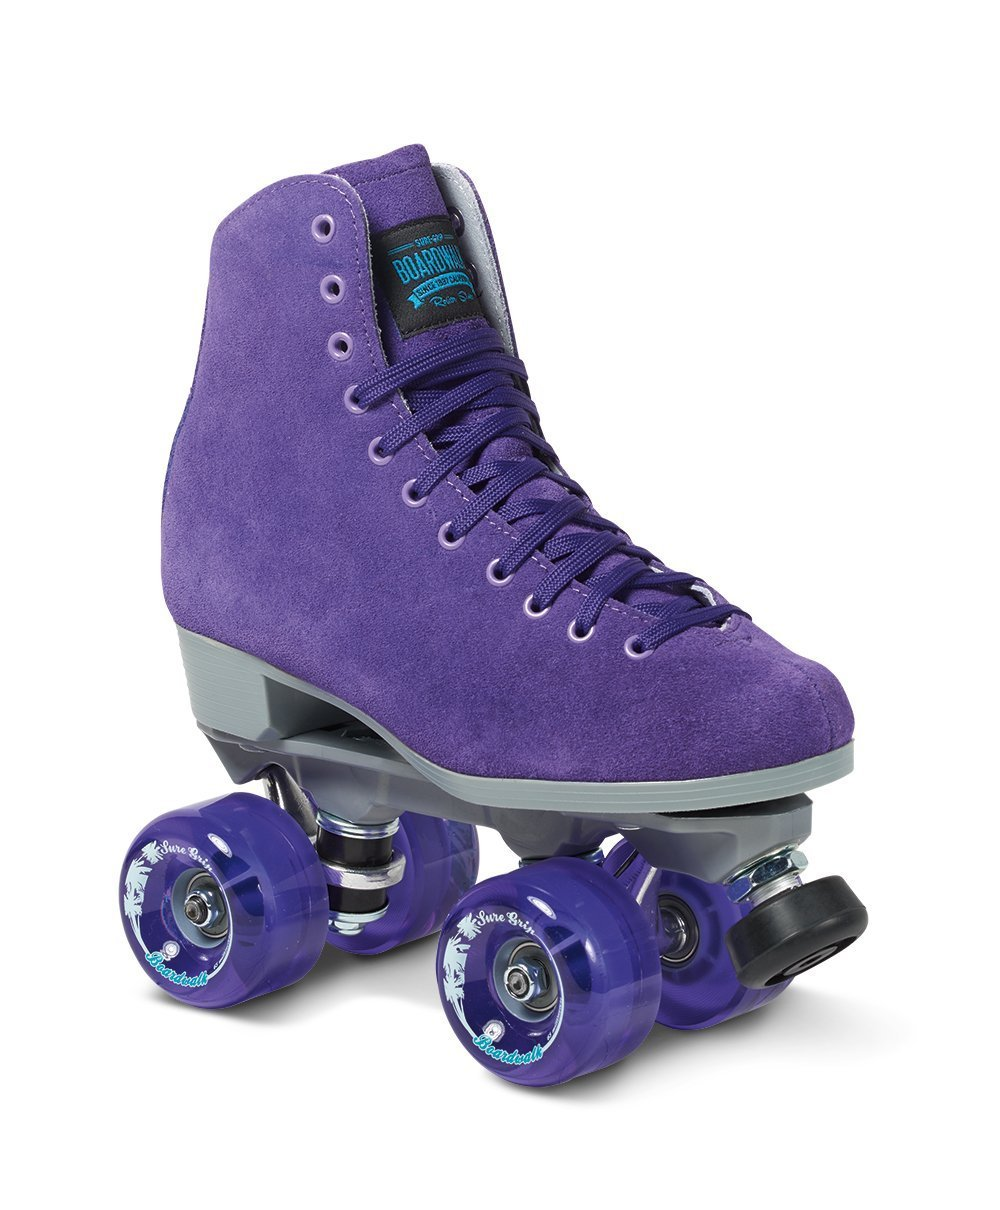 Sure-Grip Purple Boardwalk Skates Outdoor by Sure-Grip